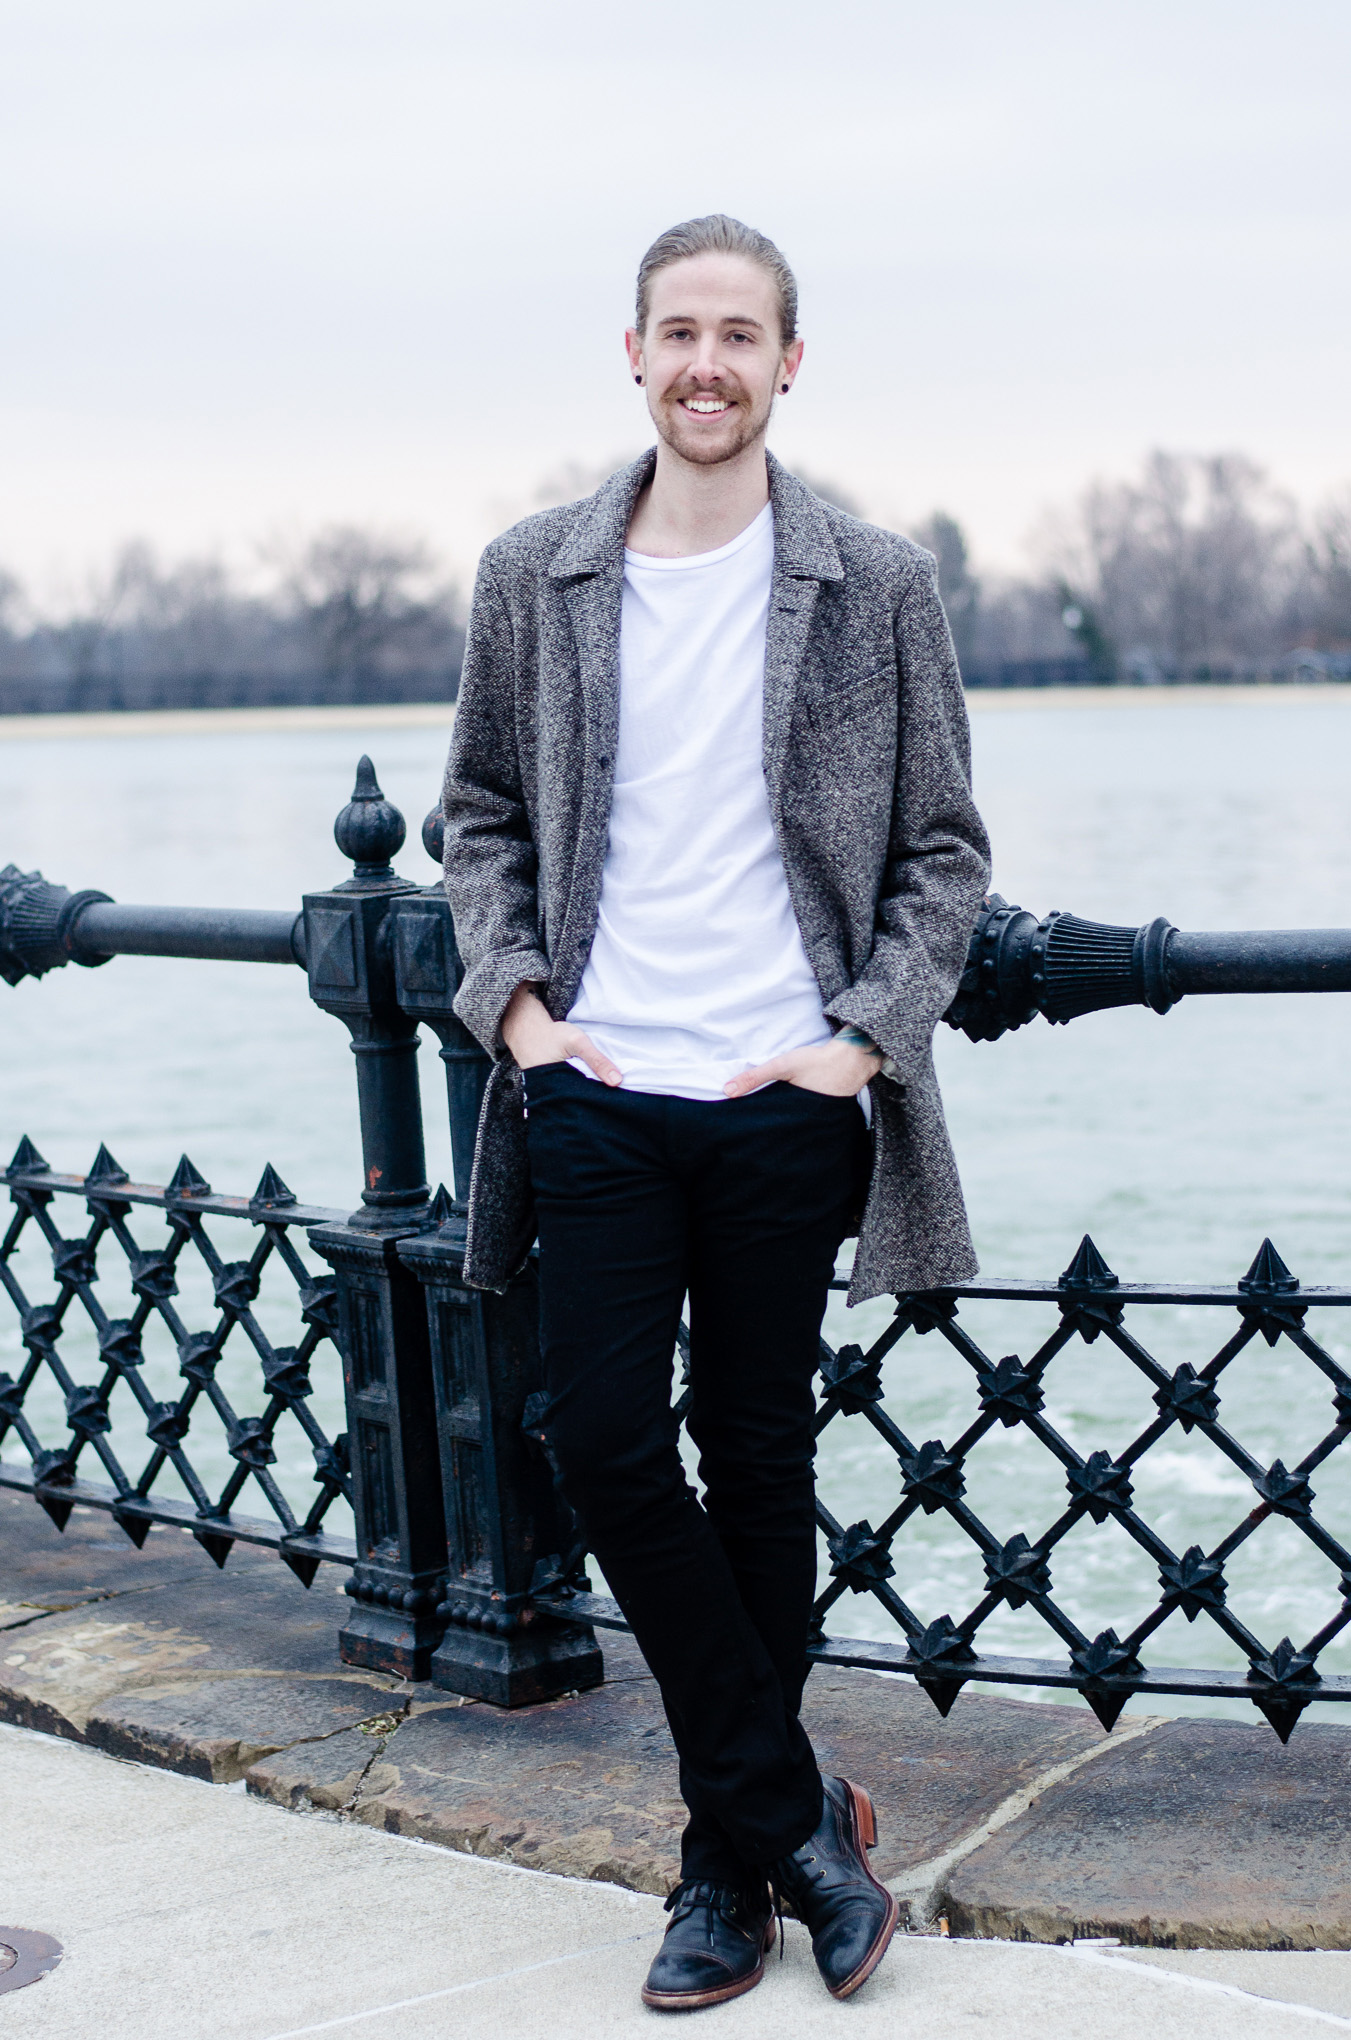 The Kentucky Gent, a men's fashion and lifestyle blogger, is Big Apple bound for NYFW in his latest post.